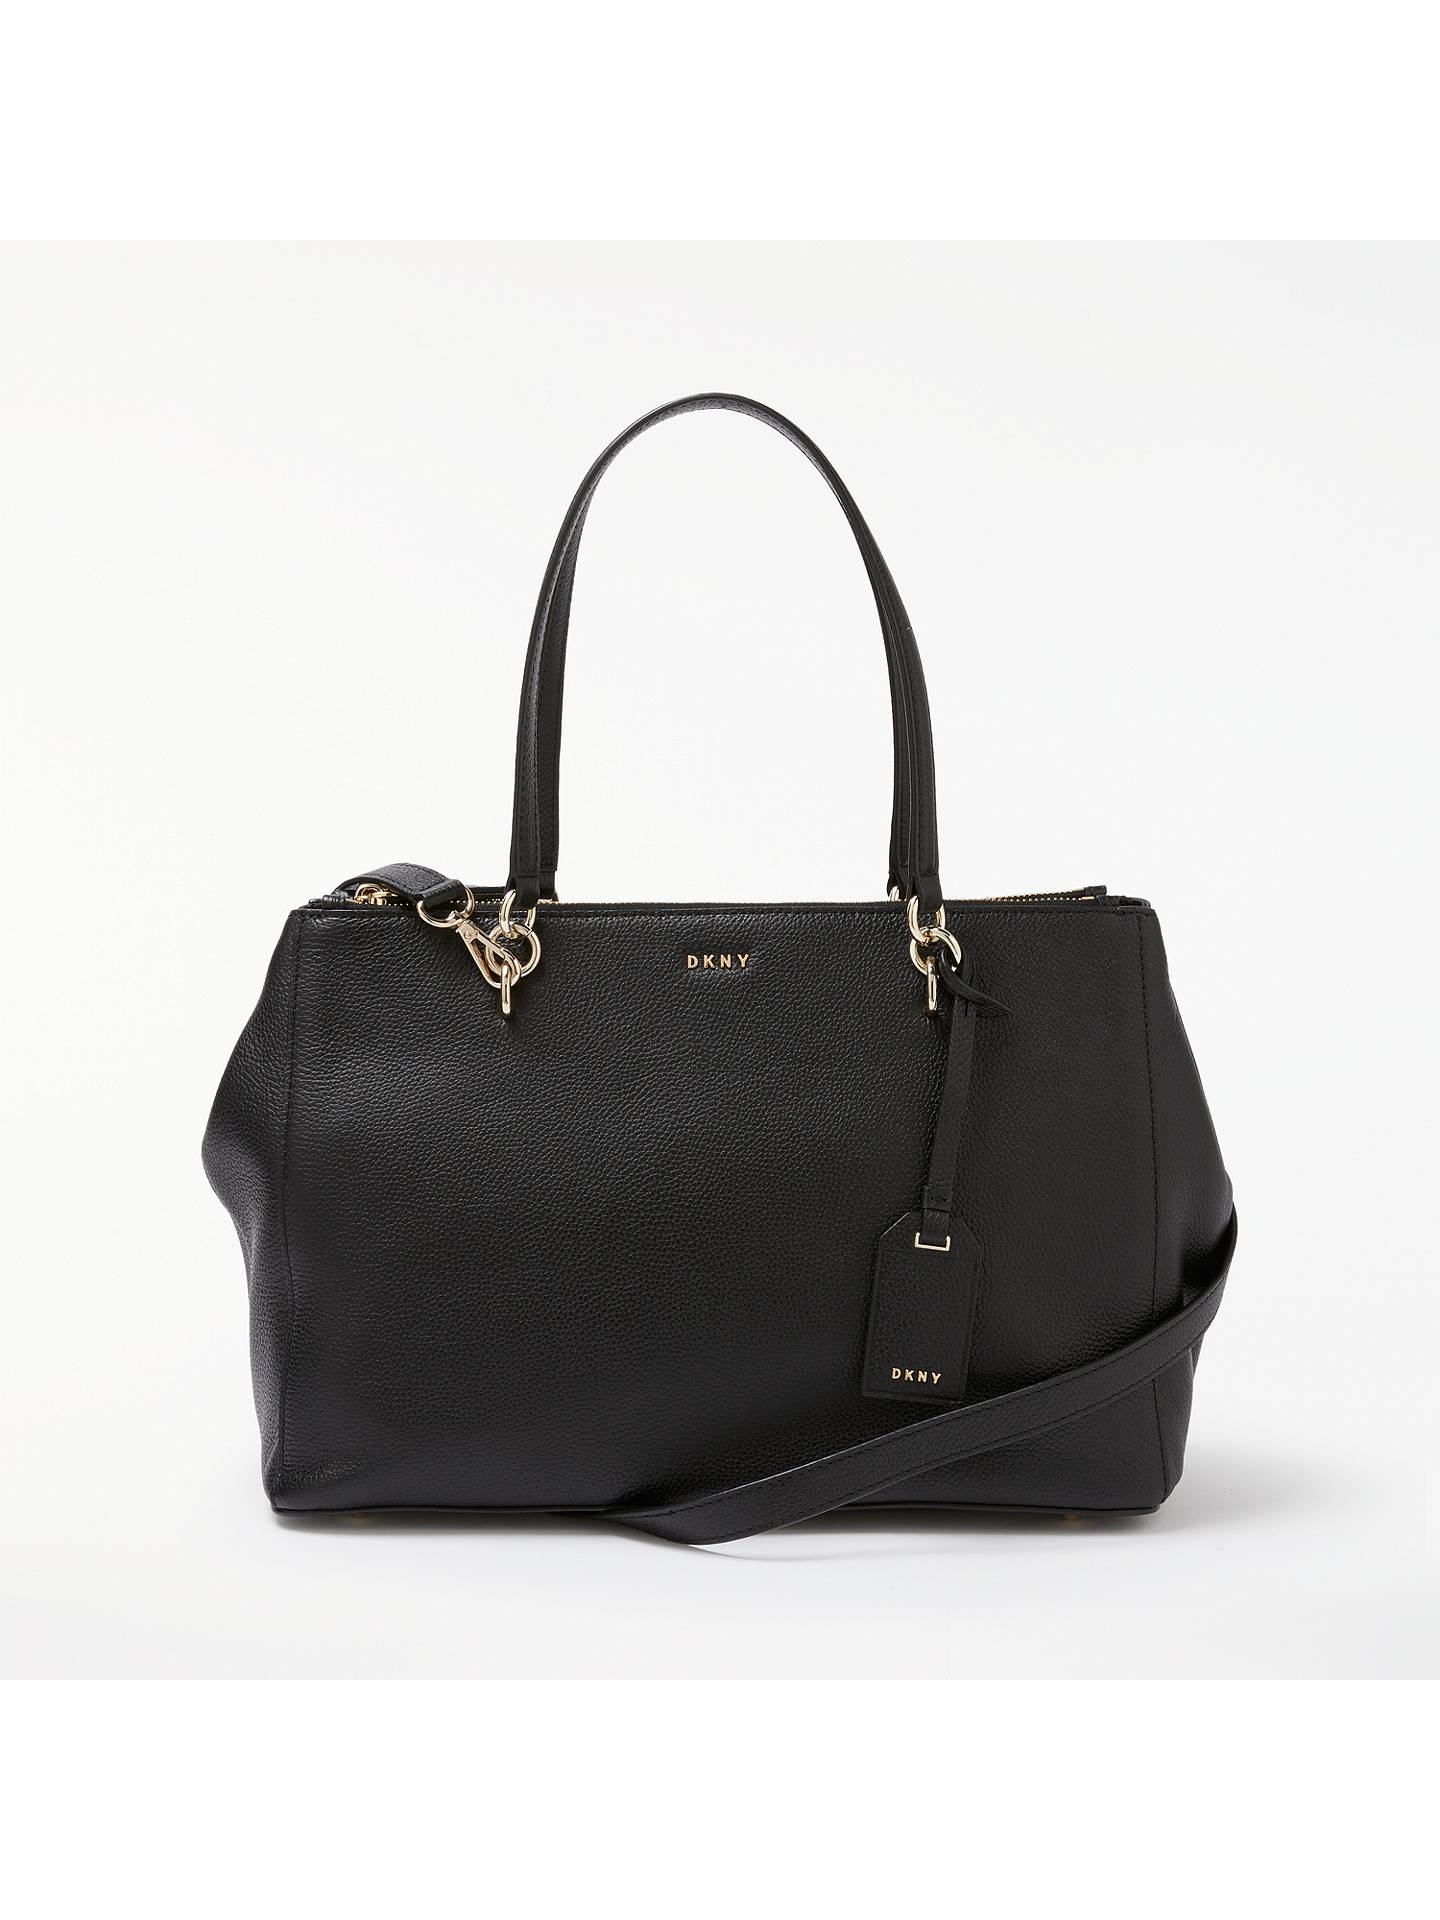 dkny leather bag review